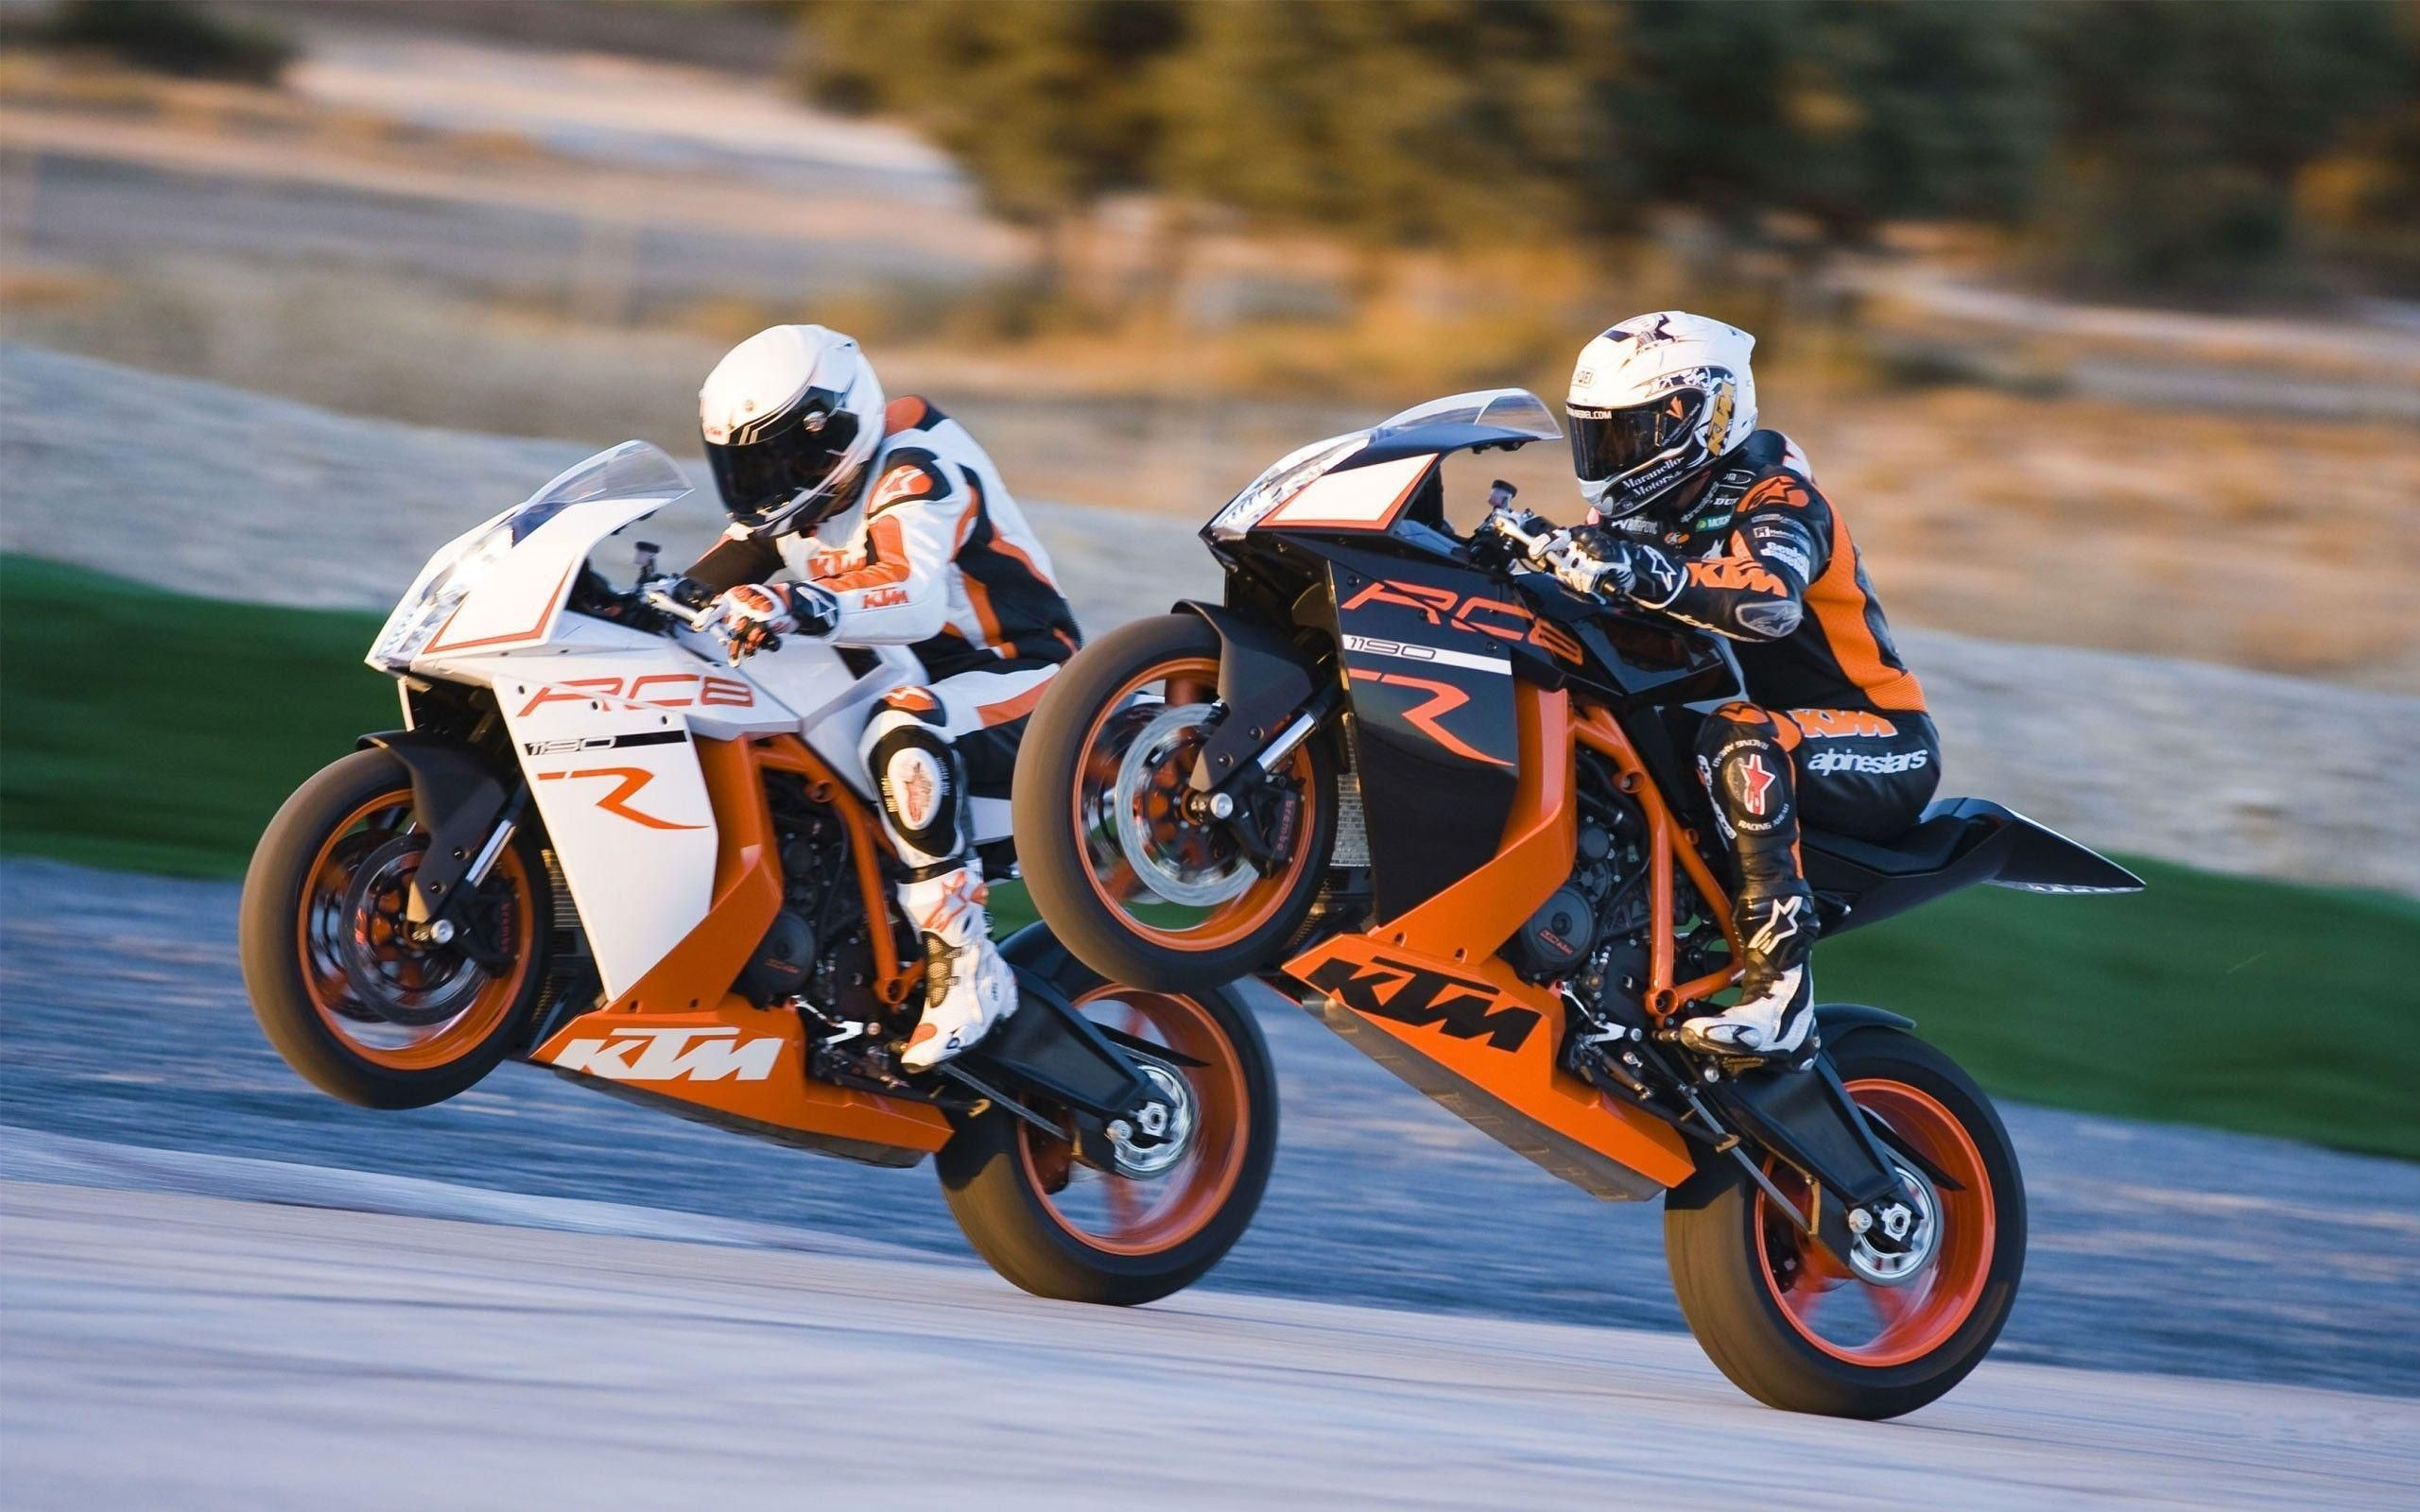 Ktm Bikes Wallpapers Wallpapertag: Ktm Bikes Wallpapers (66+ Background Pictures